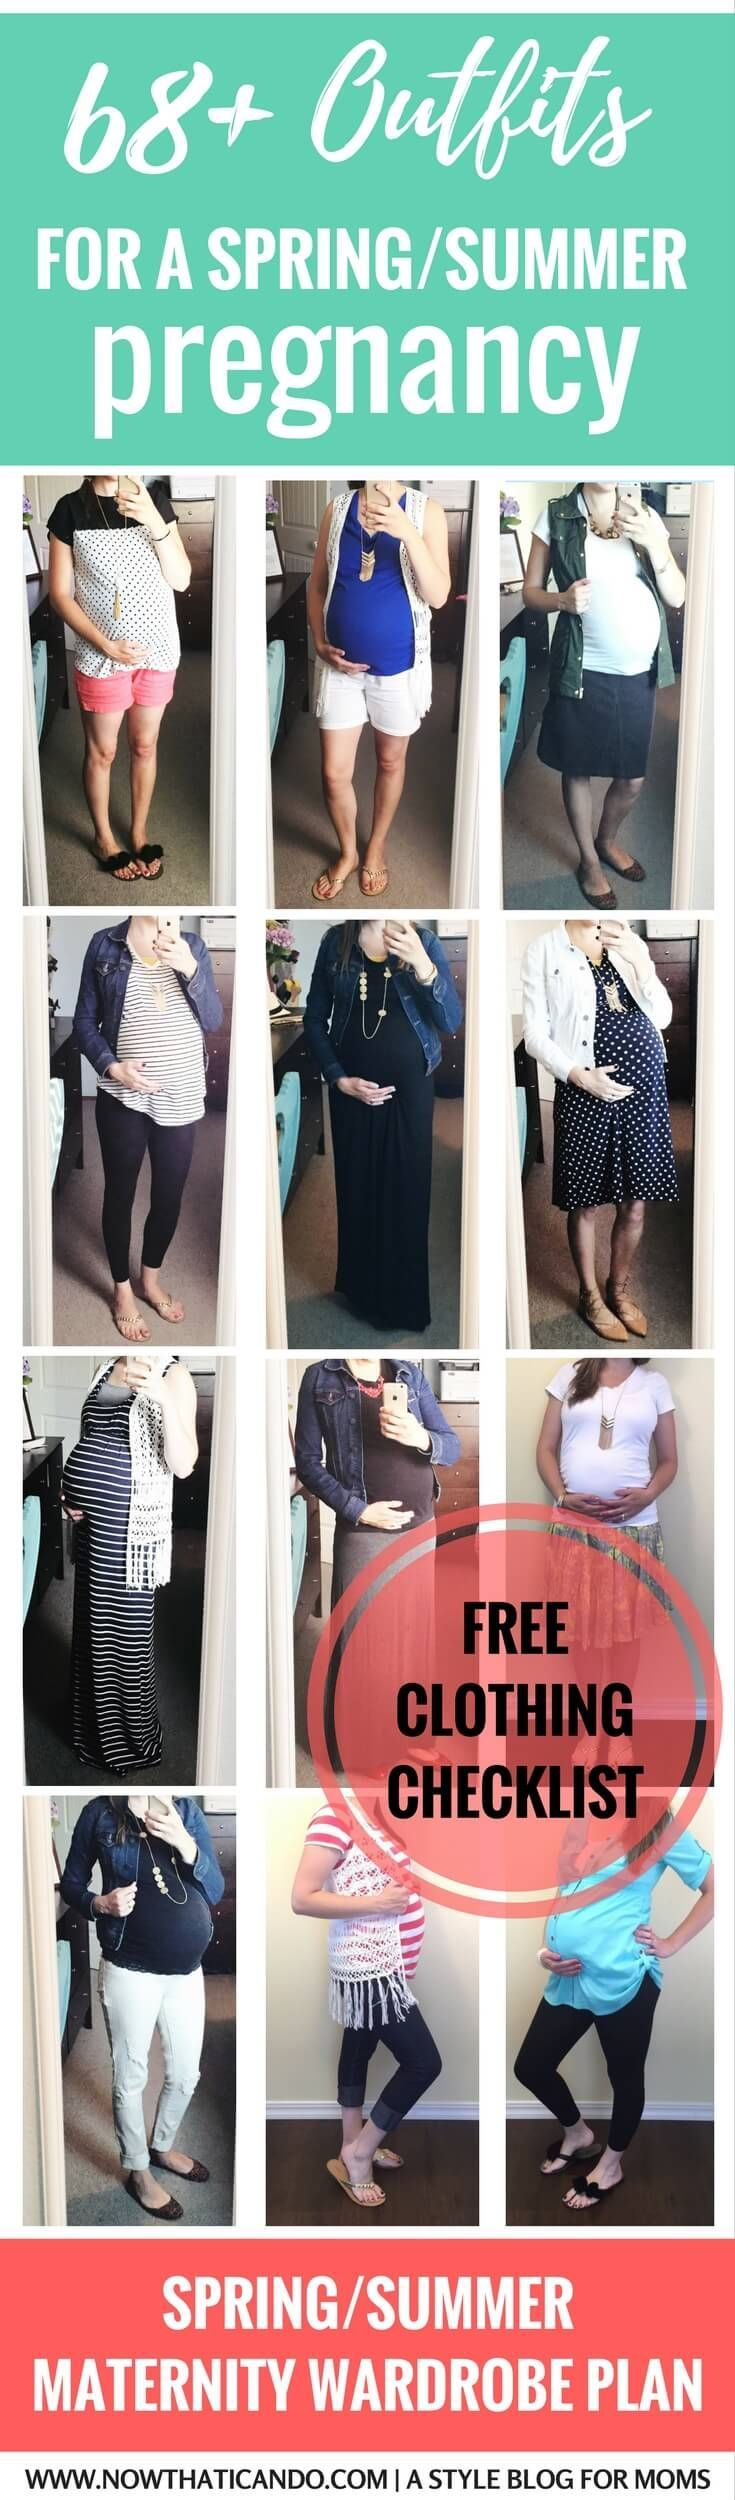 Inspiration for cute maternity outfits for pregnant moms. These are stylish but still comfy! Click for a free clothing checklist on the blog!